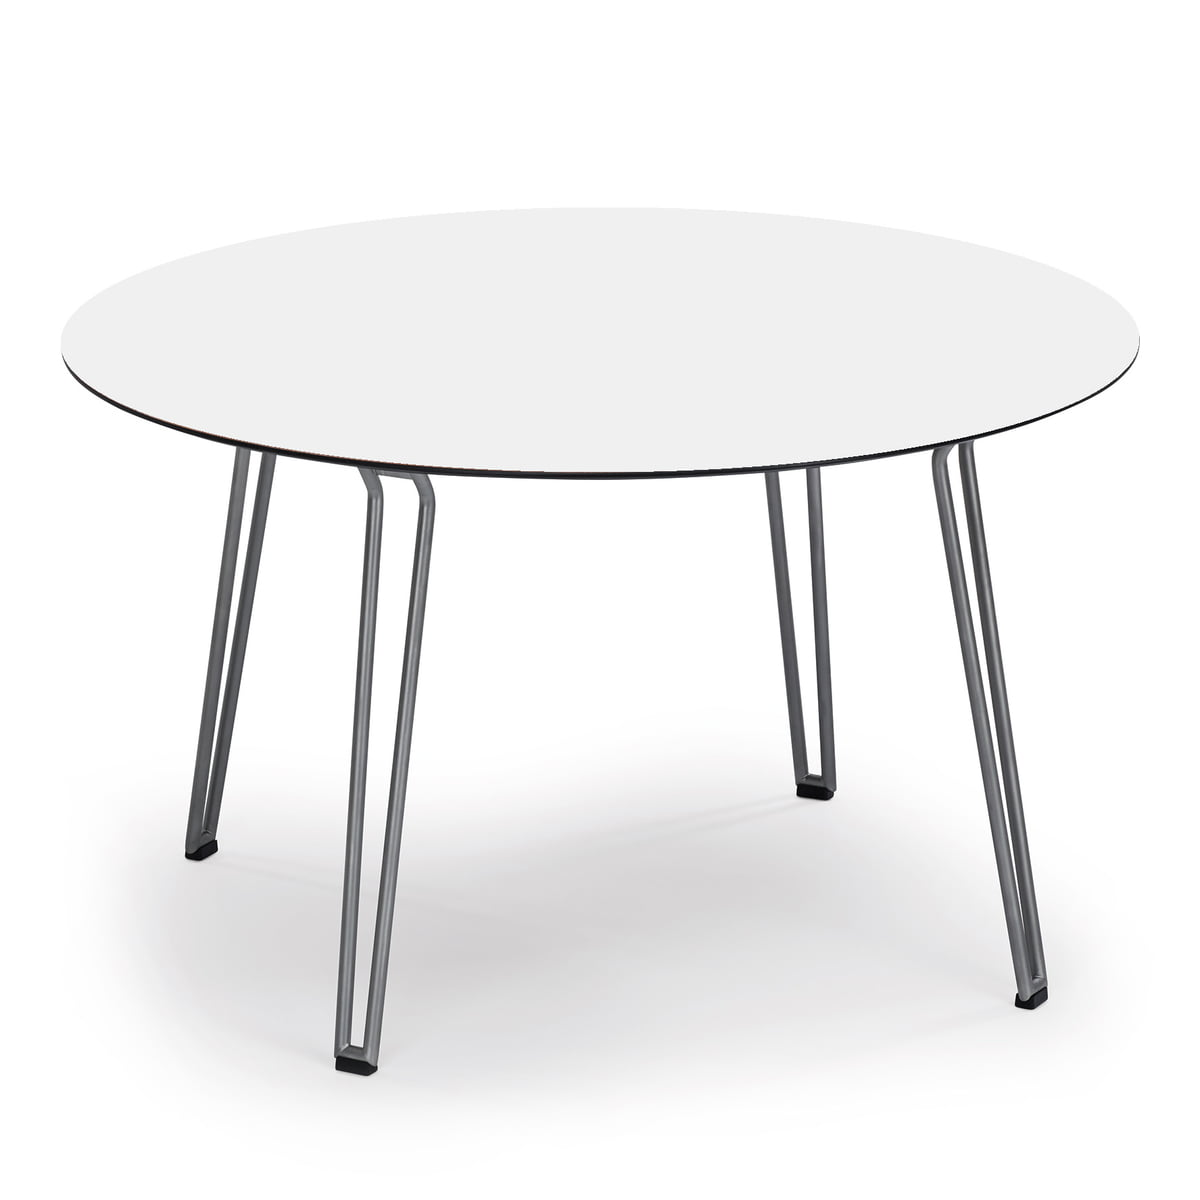 round slope table by weish upl connox shop. Black Bedroom Furniture Sets. Home Design Ideas